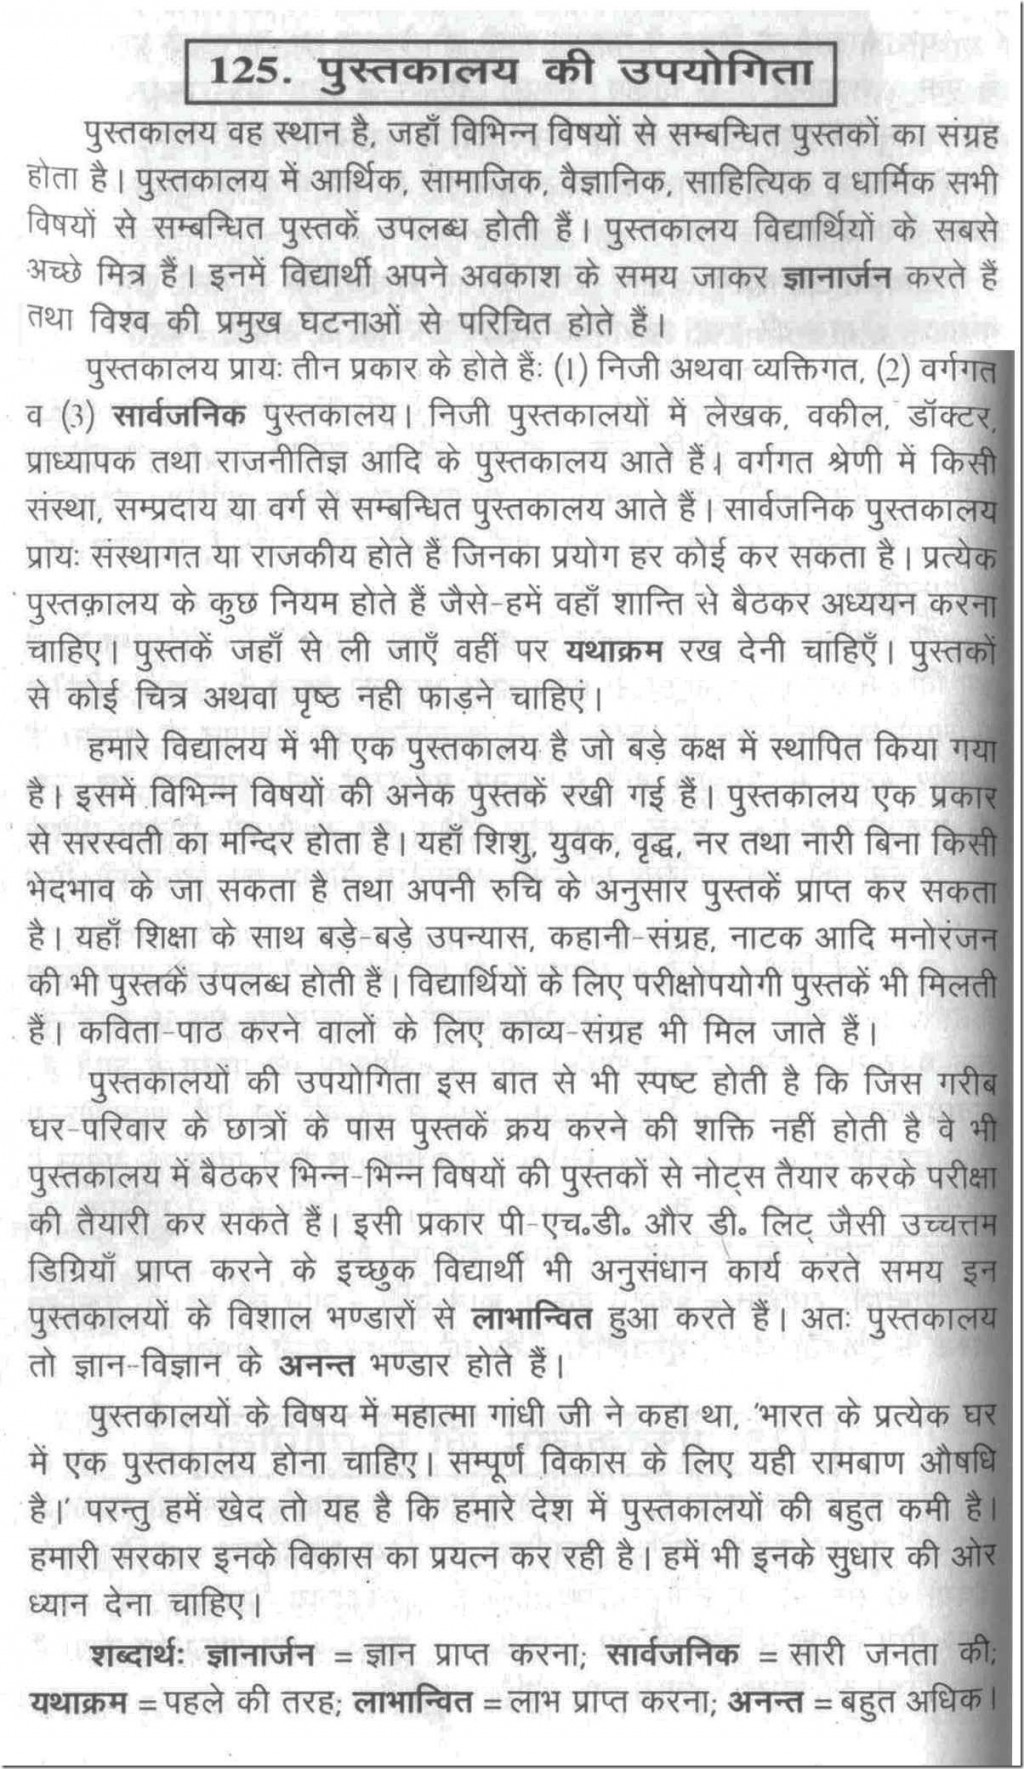 009 100125 Thumb Essay Example Good Habits In Exceptional Hindi Habit Wikipedia Eating Large